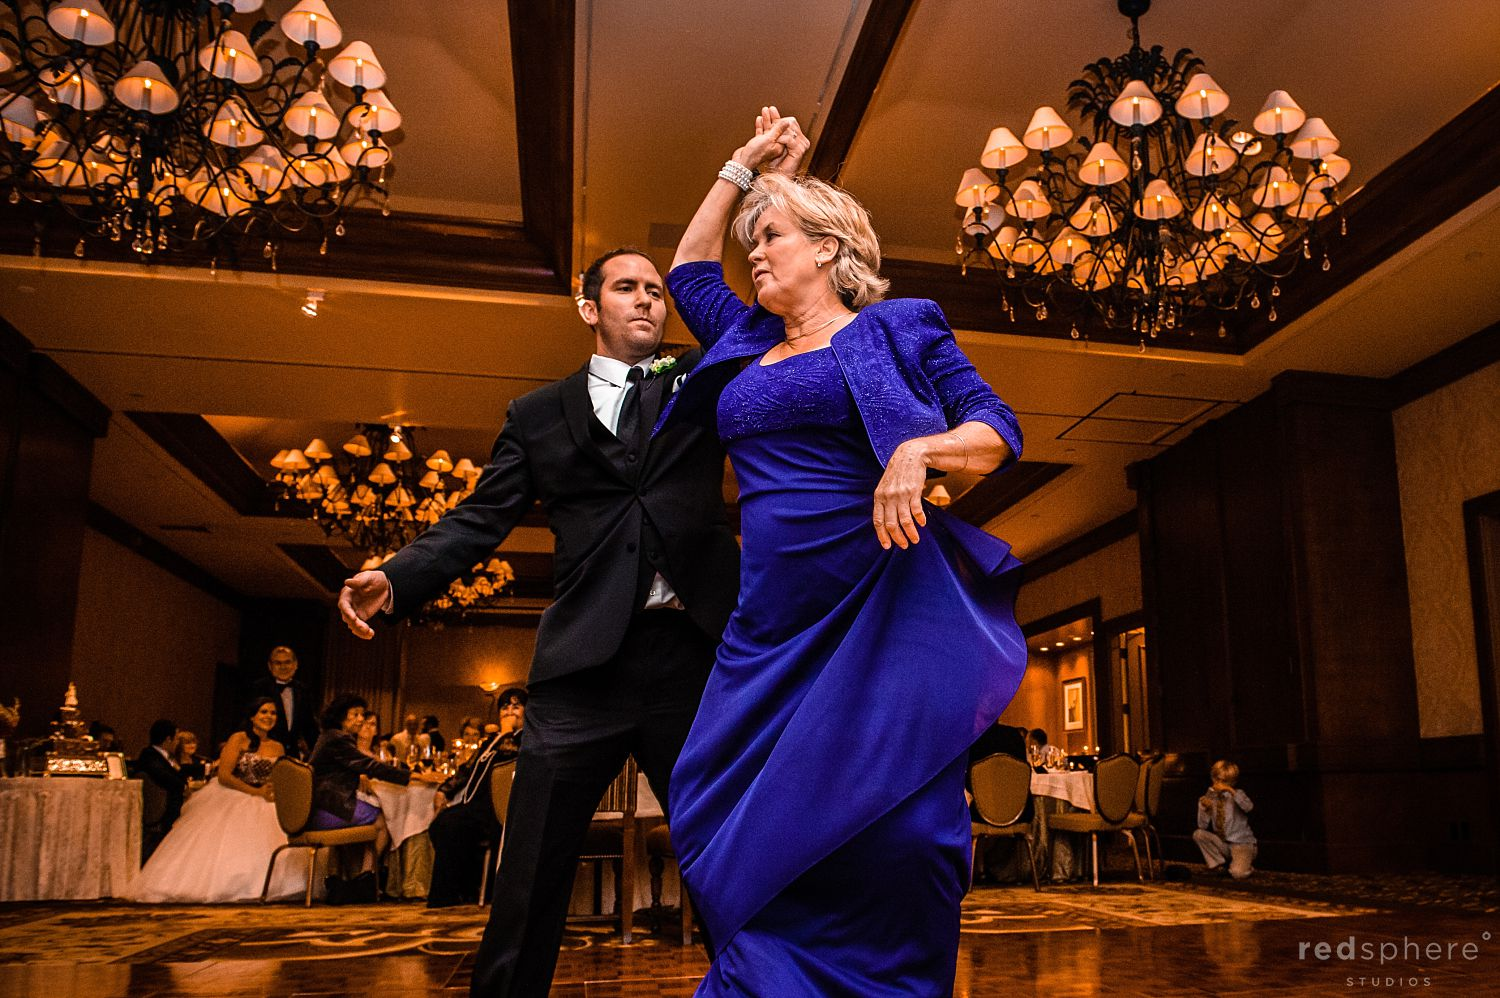 Family Members Dancing at Pebble Beach After Party at The Inn at Spanish Bay